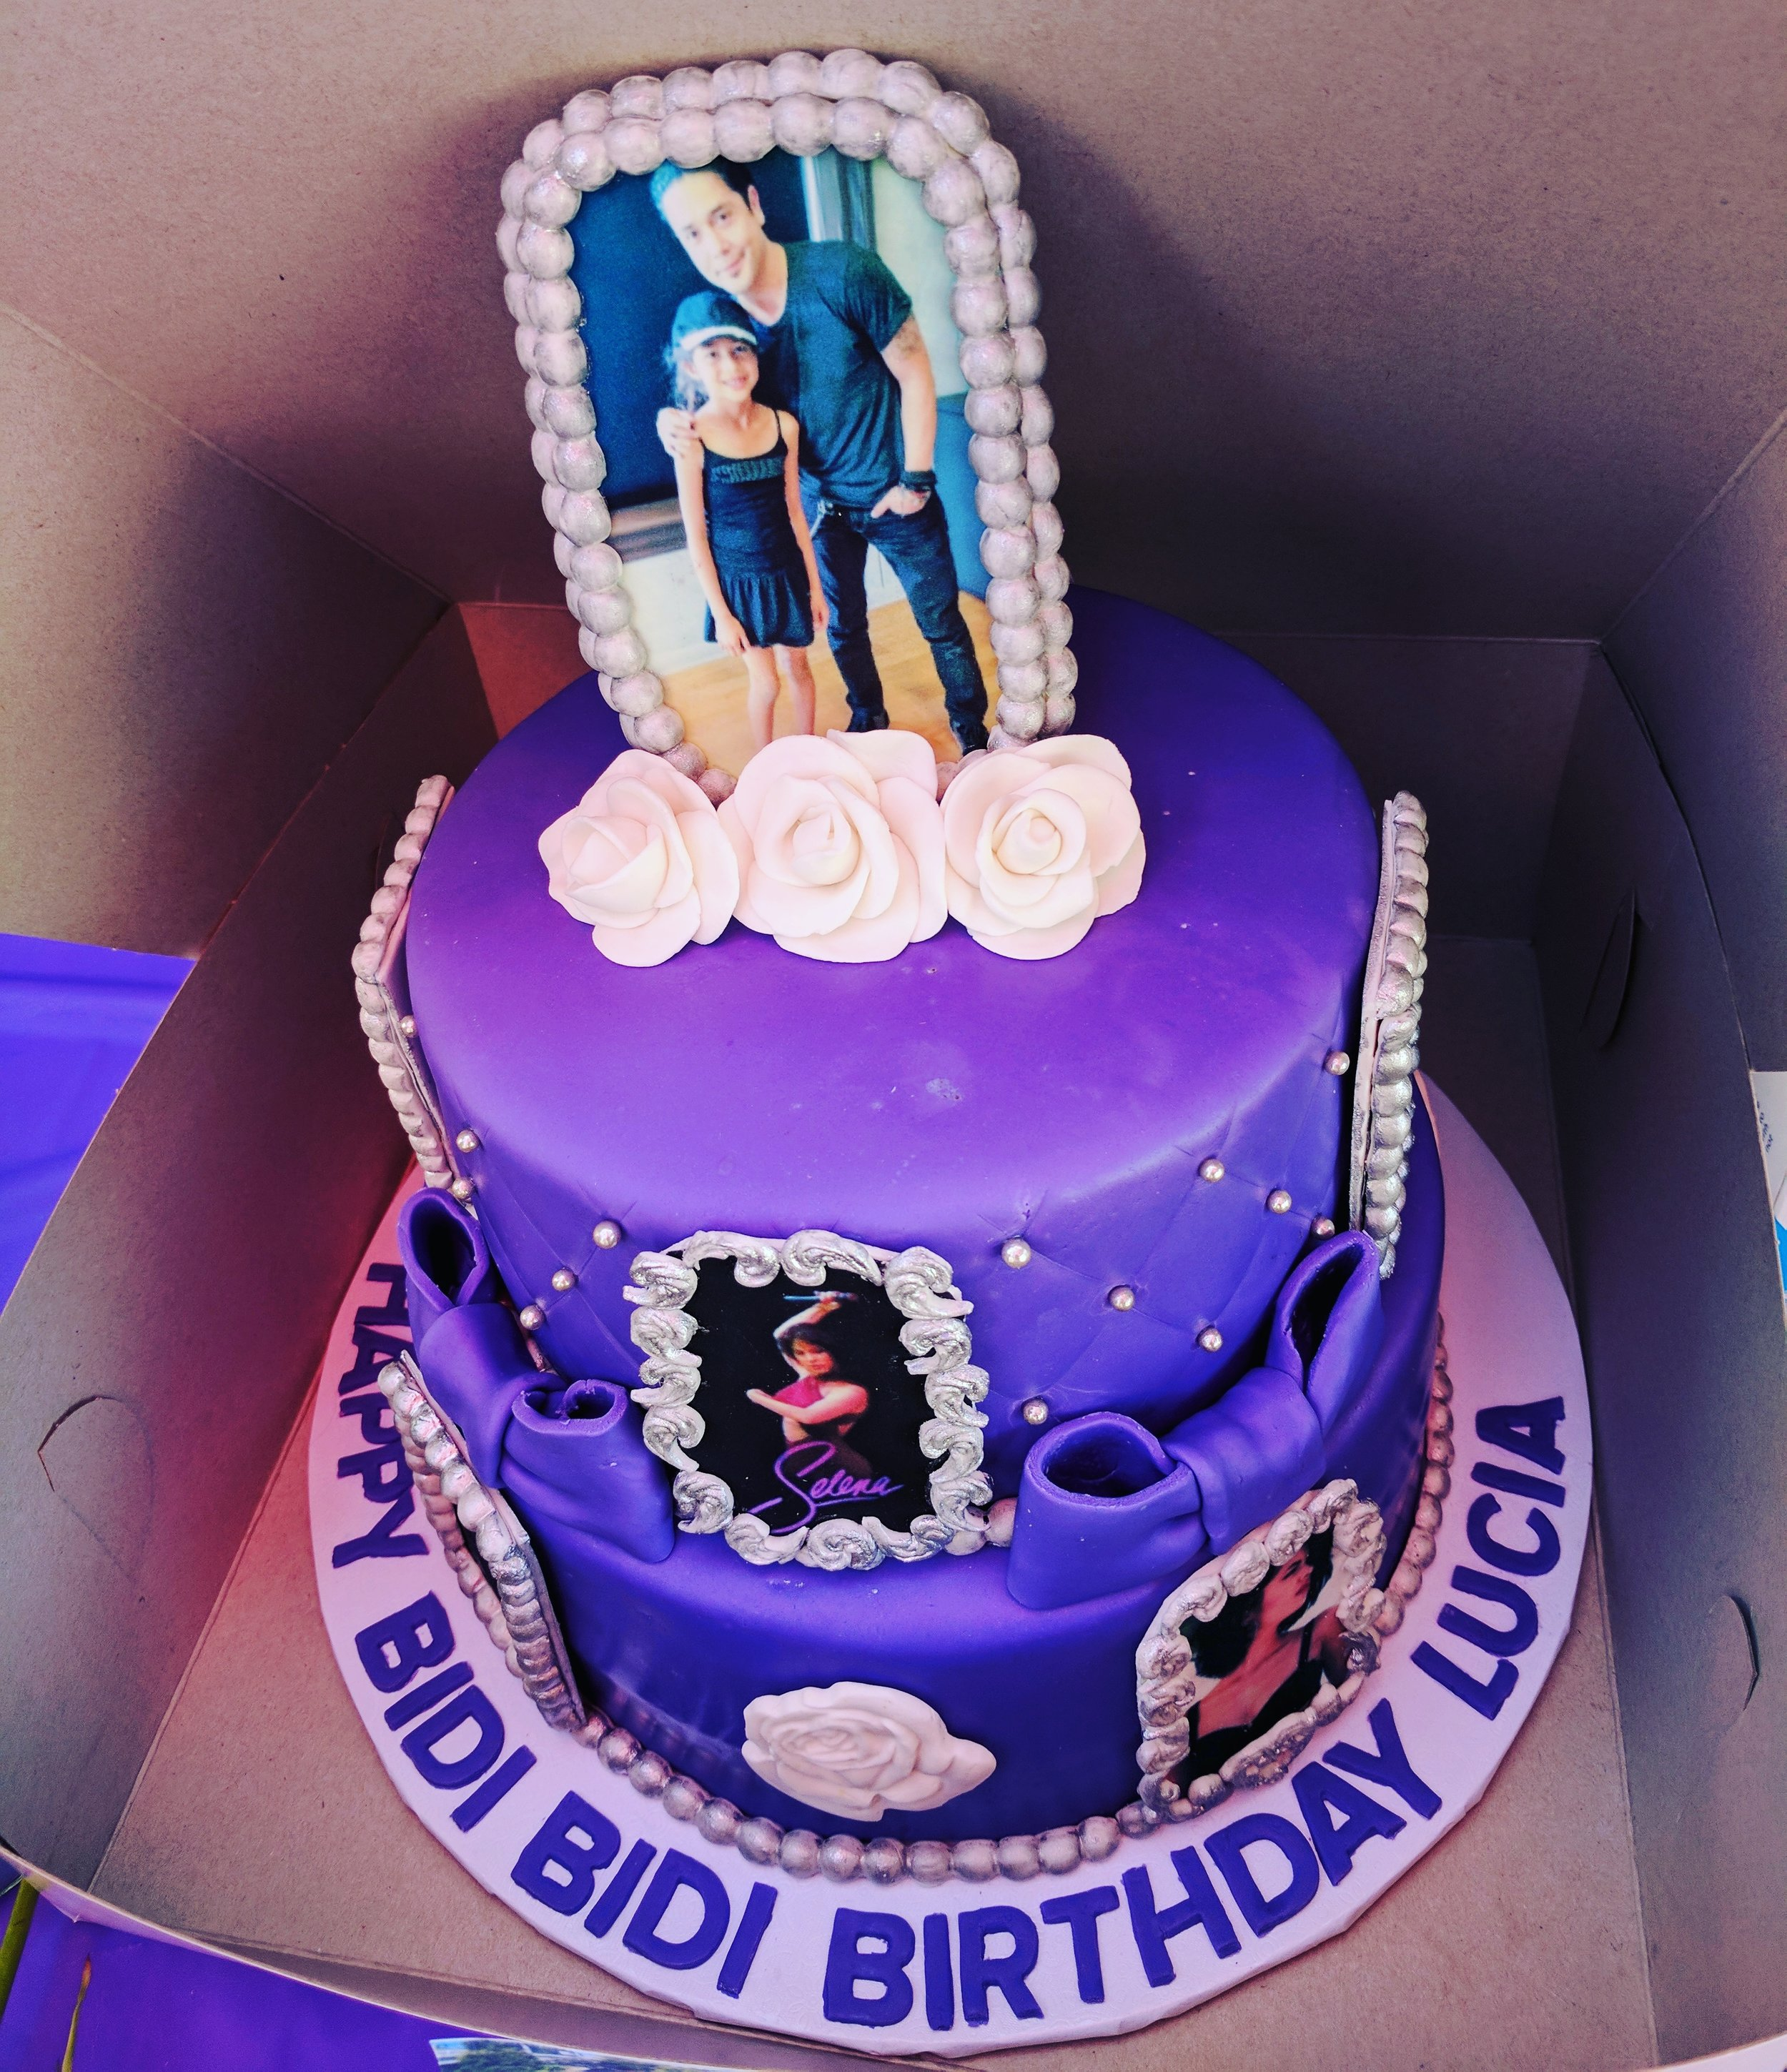 """Lucia pictured with the late singer's husband Chris Perez on the """"Bidi Bidi Cake"""" topper. (Selena's famous song """"Bidi Bidi Bom Bom"""" has become an anthem of sorts during Latino parties)."""